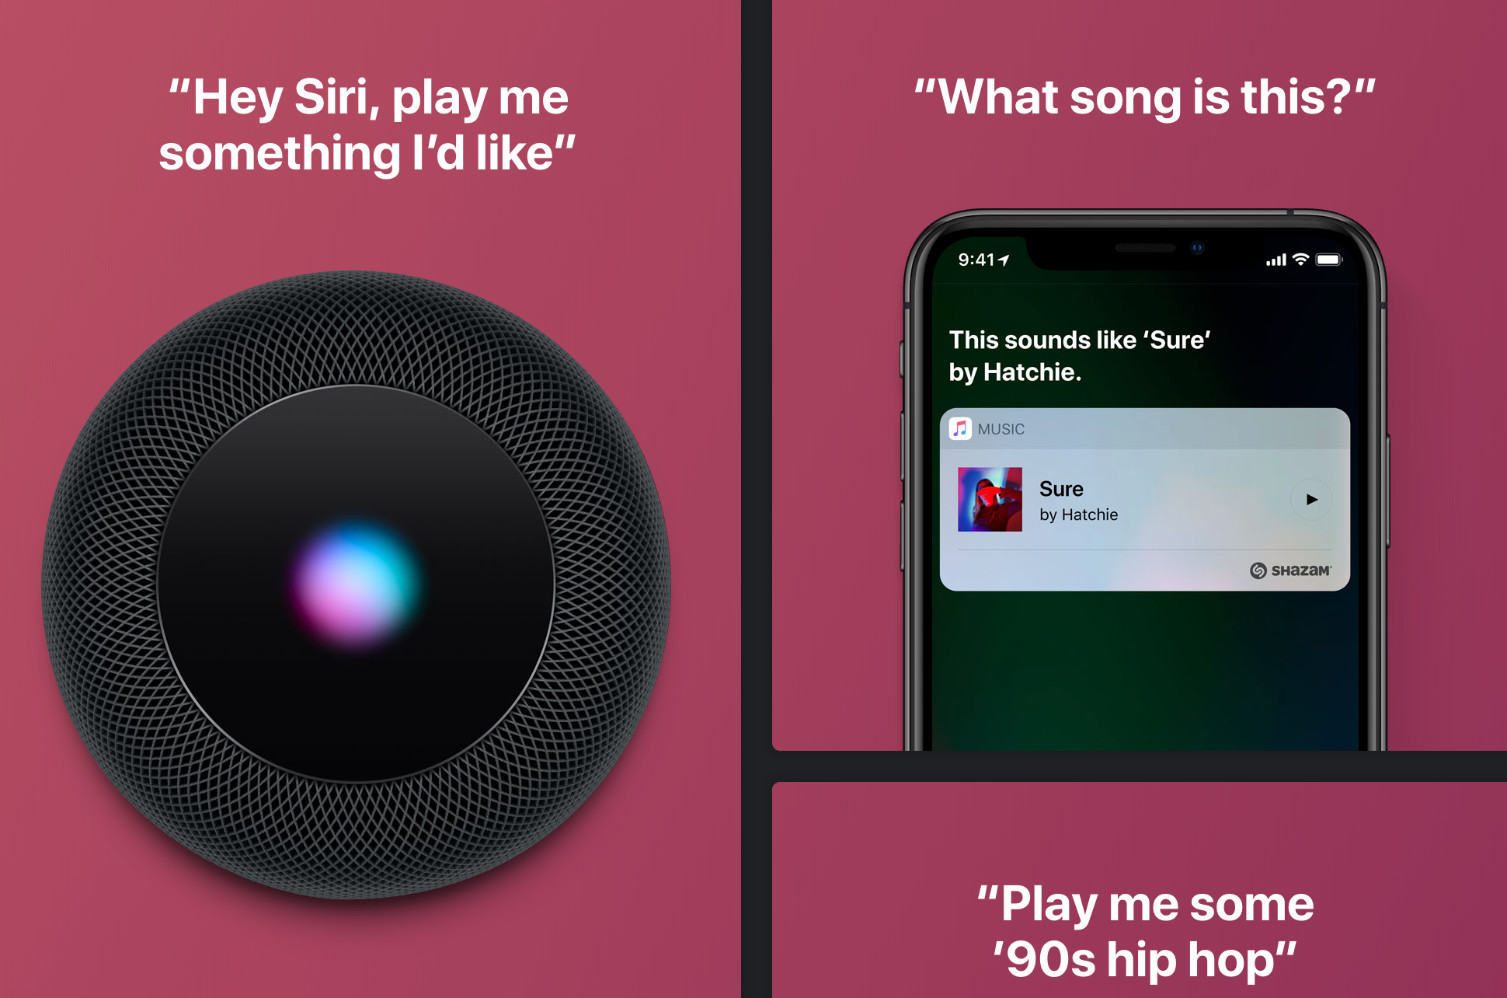 Voice search with Siri